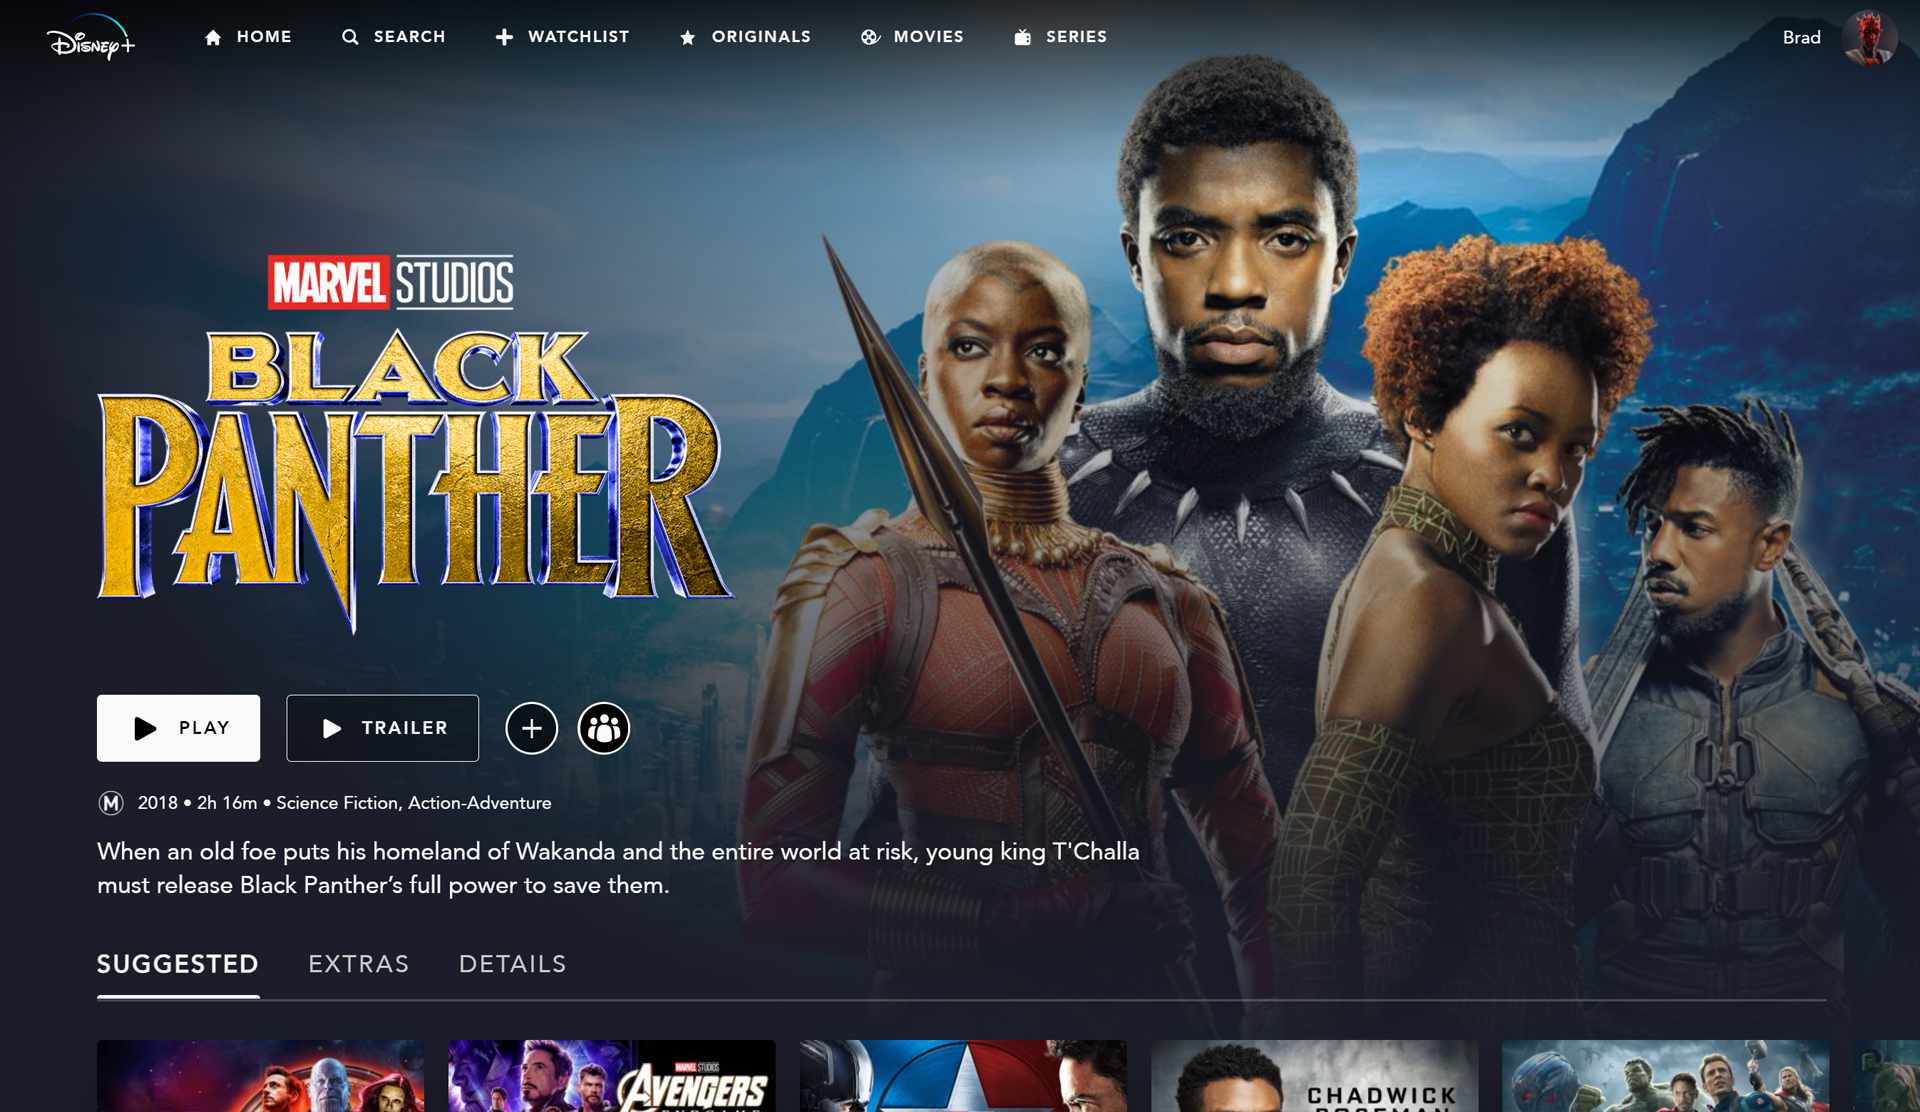 Marvel's Black Panther film and other Marvel movies for kids on the Disney Plus app.